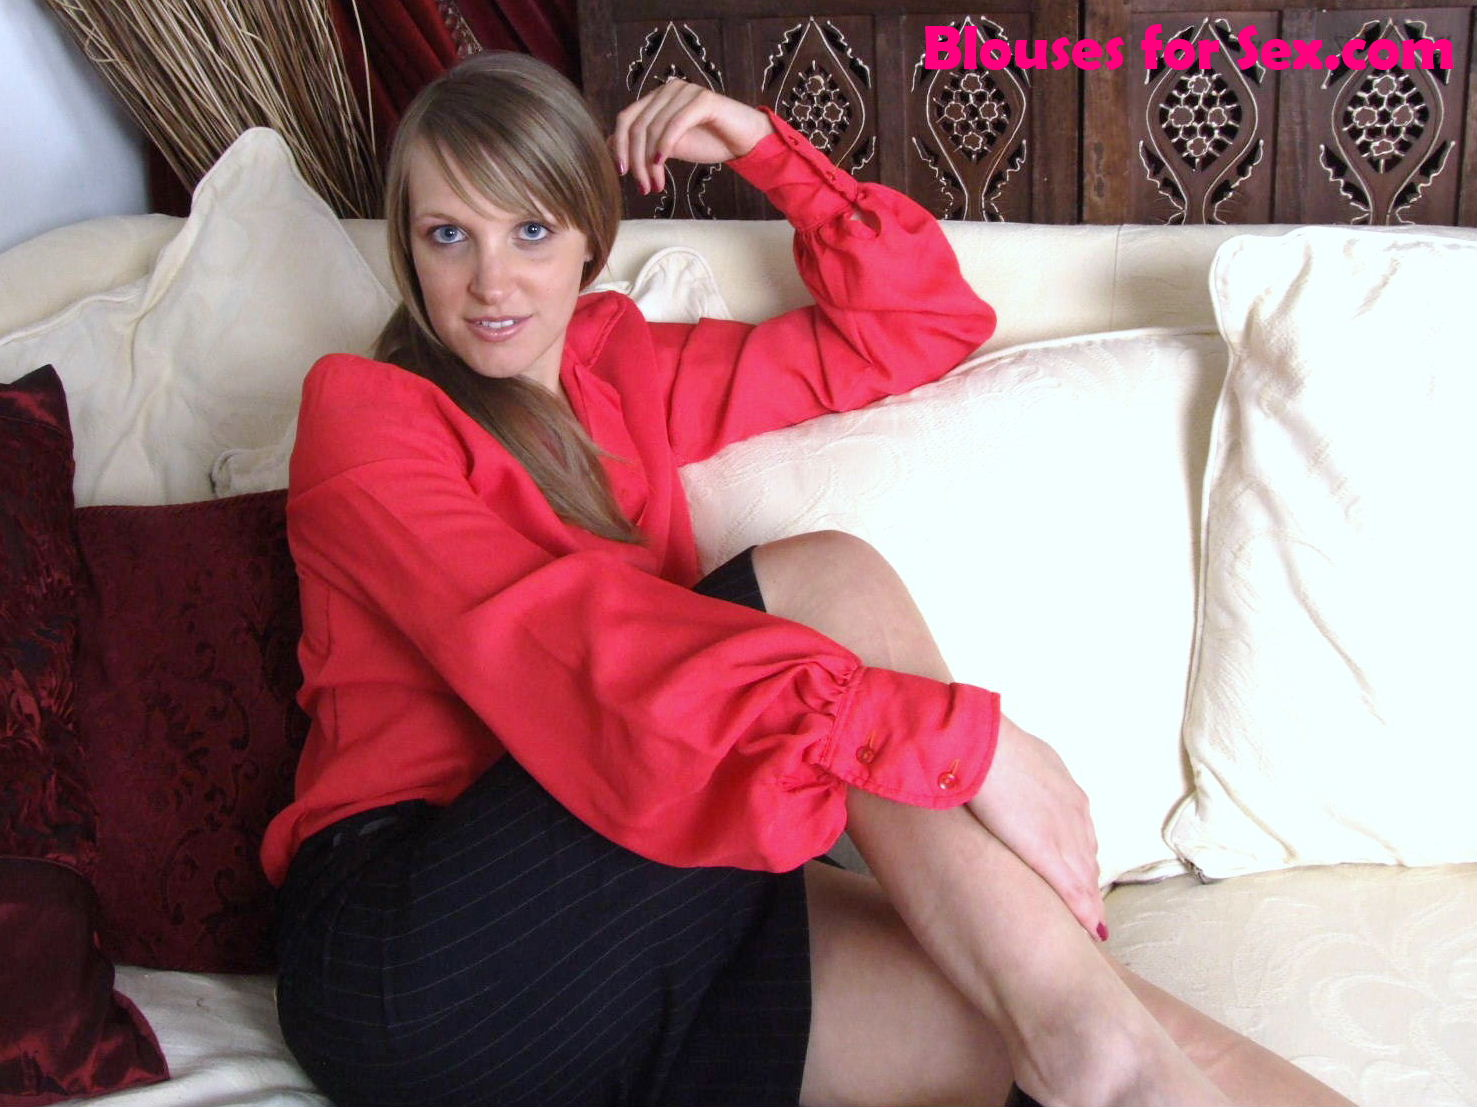 Relaxing in Blouse and Skirt